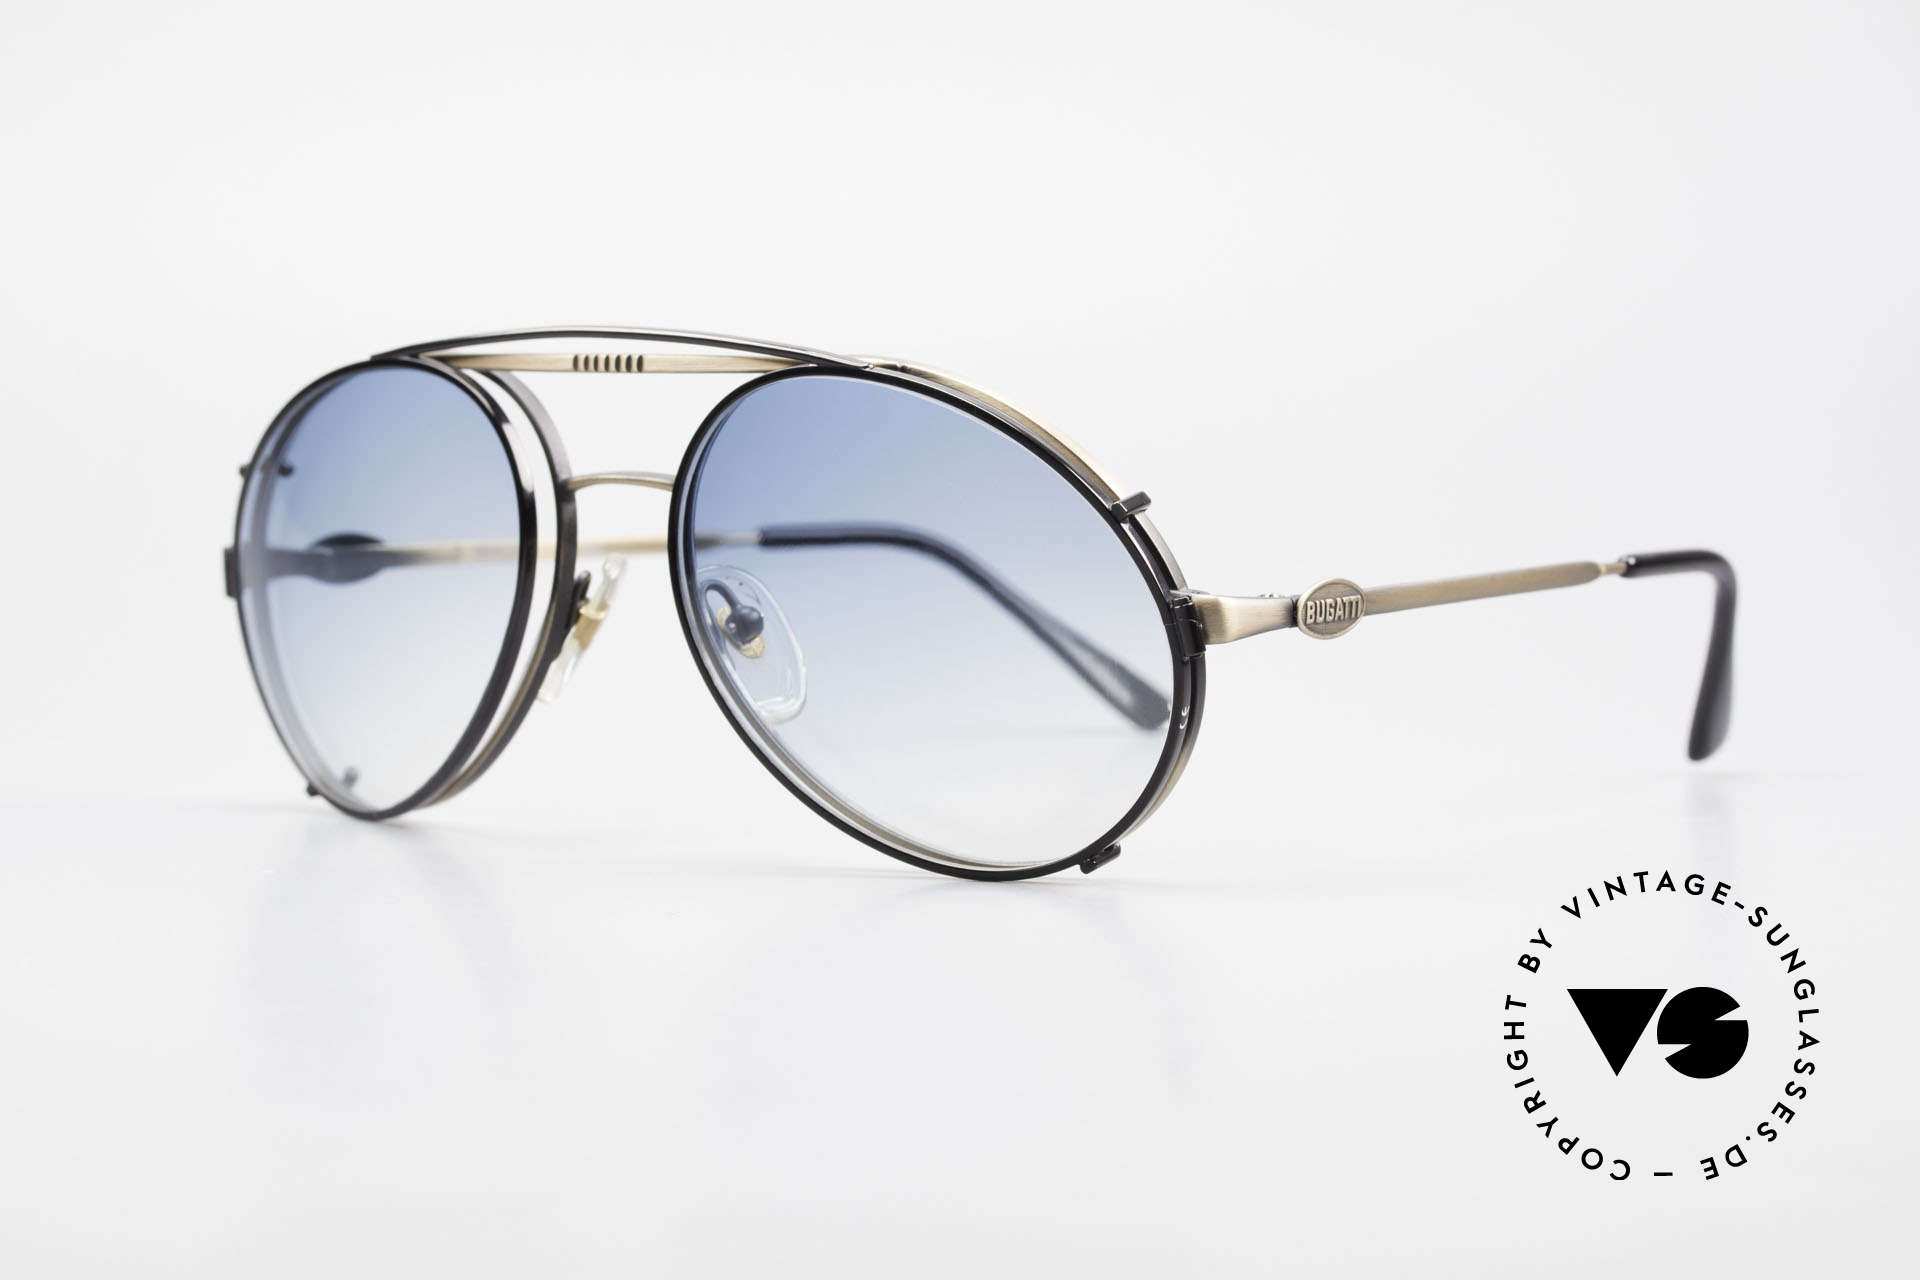 Bugatti 65282 Vintage Frame With Sun Clip, eyeglass-frame with practical clip; size 54mm, Made for Men